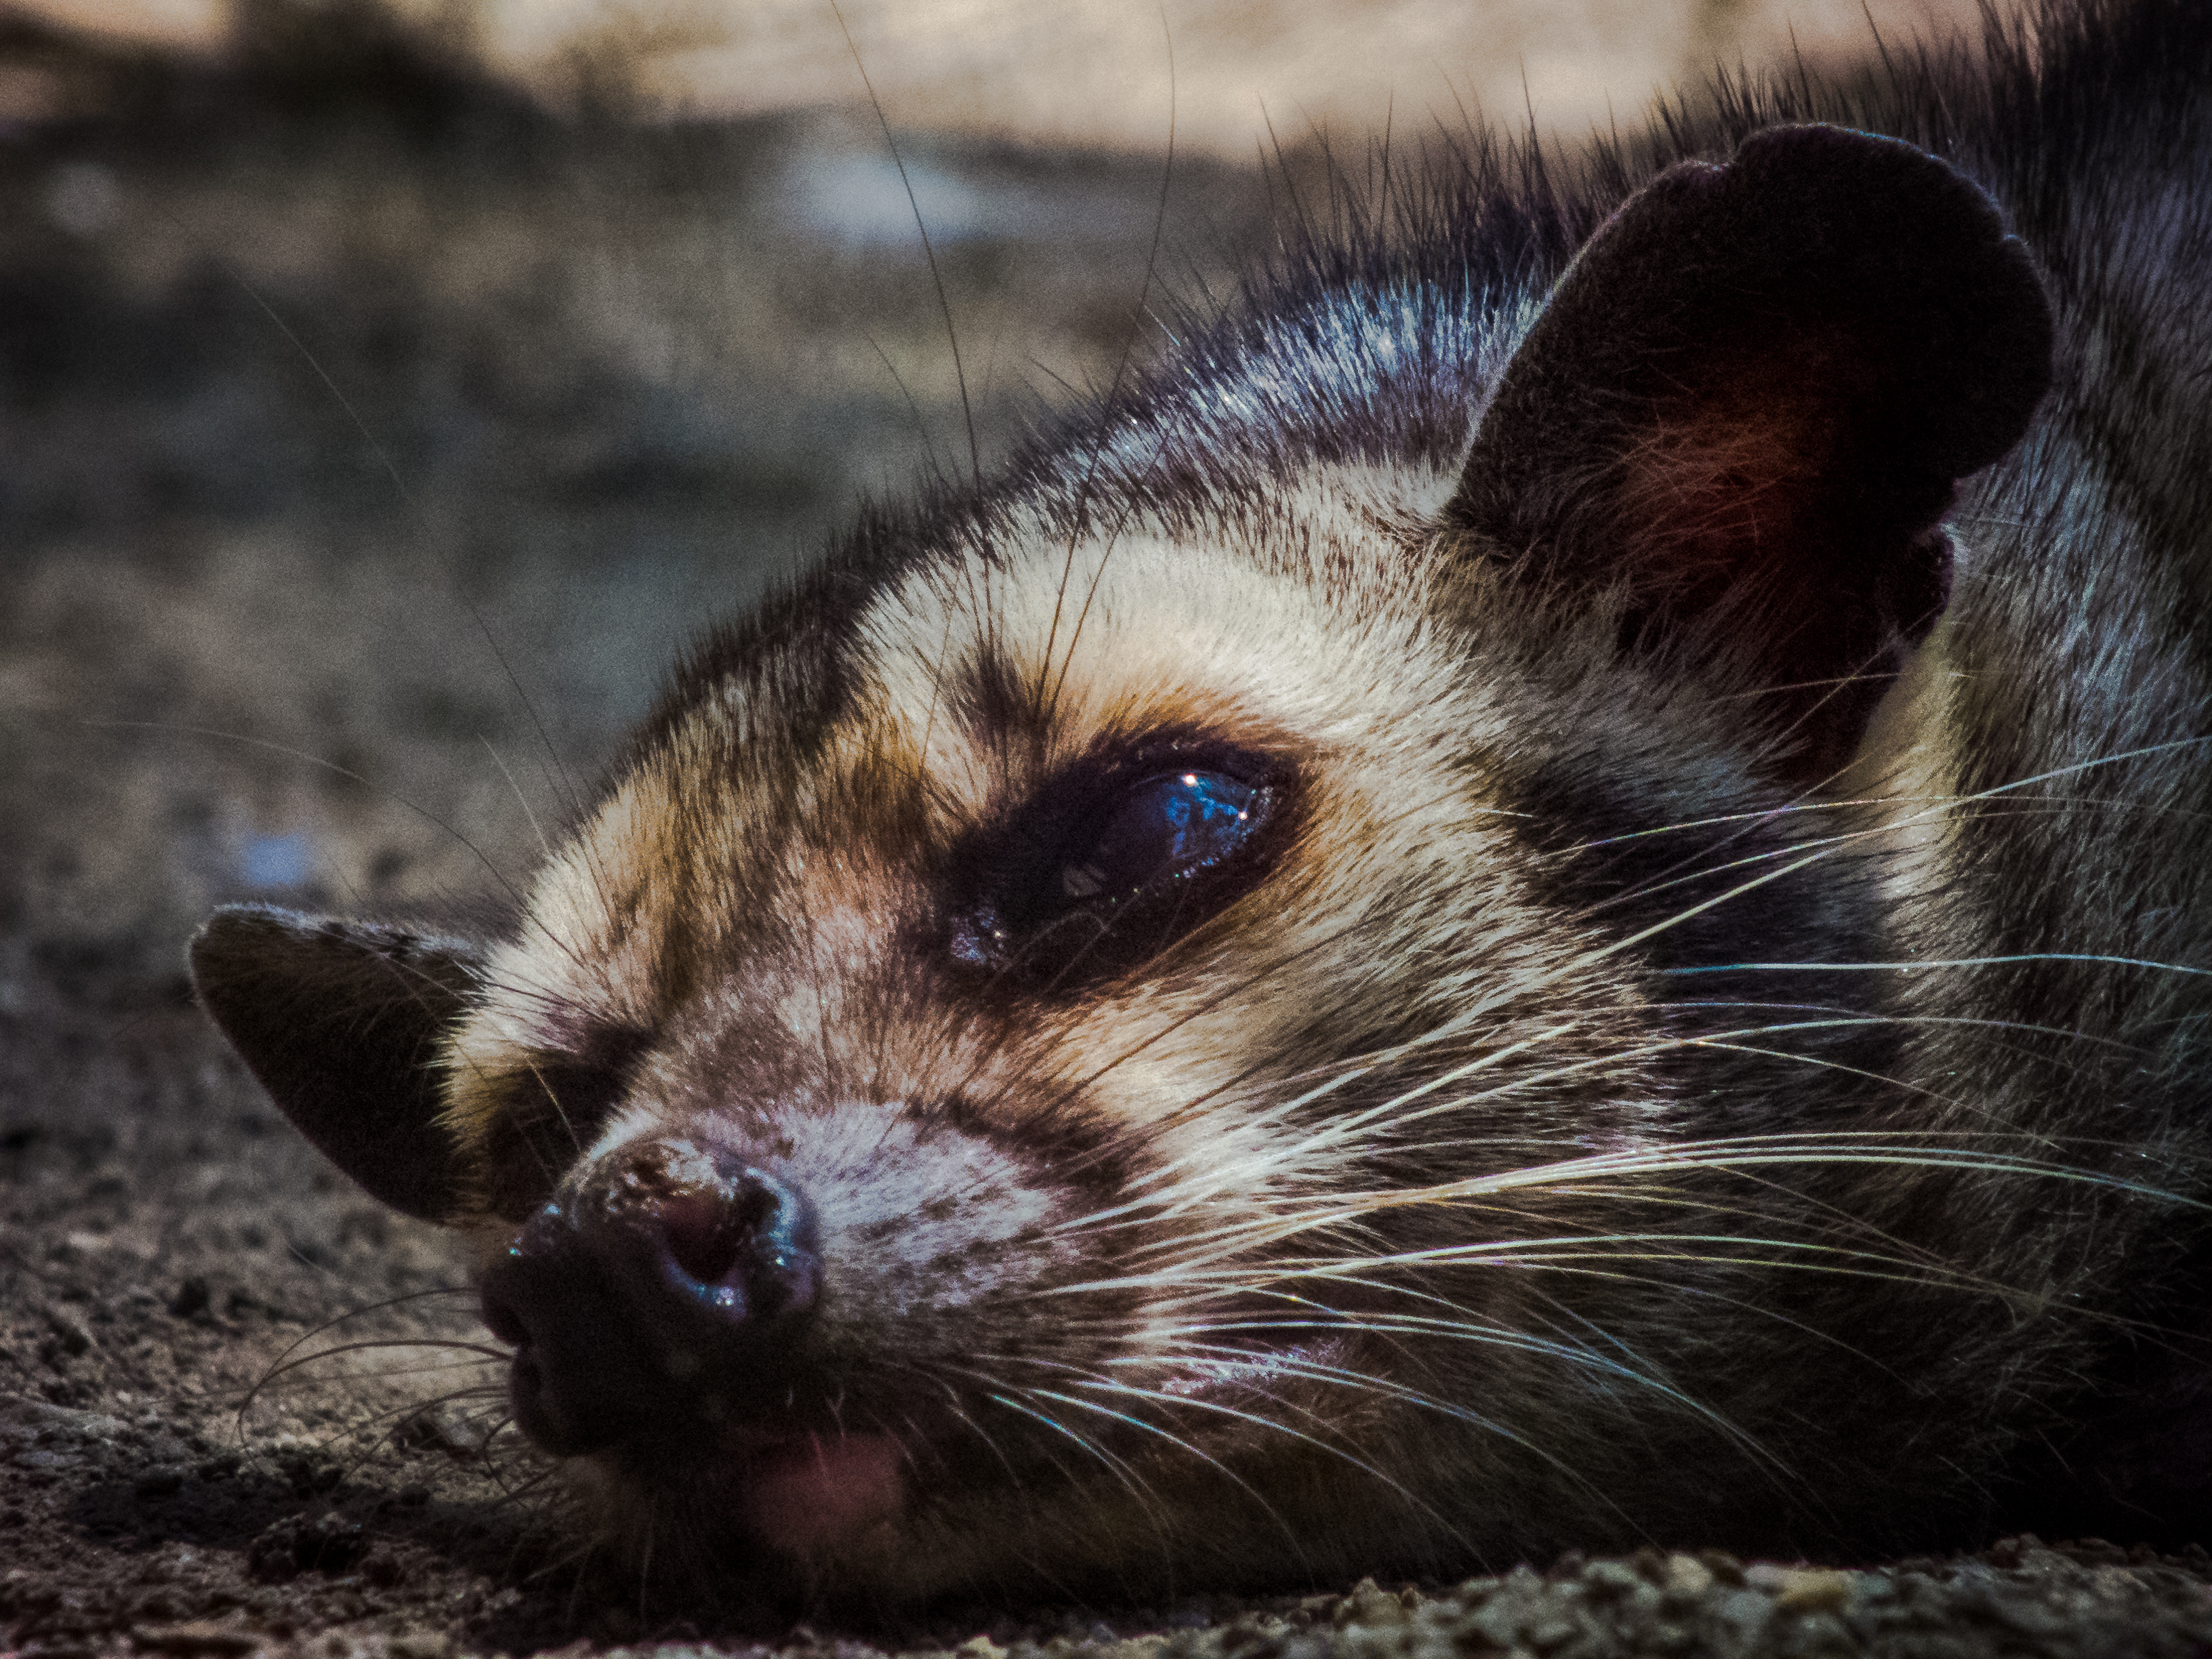 File:Himalayan Palm Civets.jpg - Wikimedia Commons